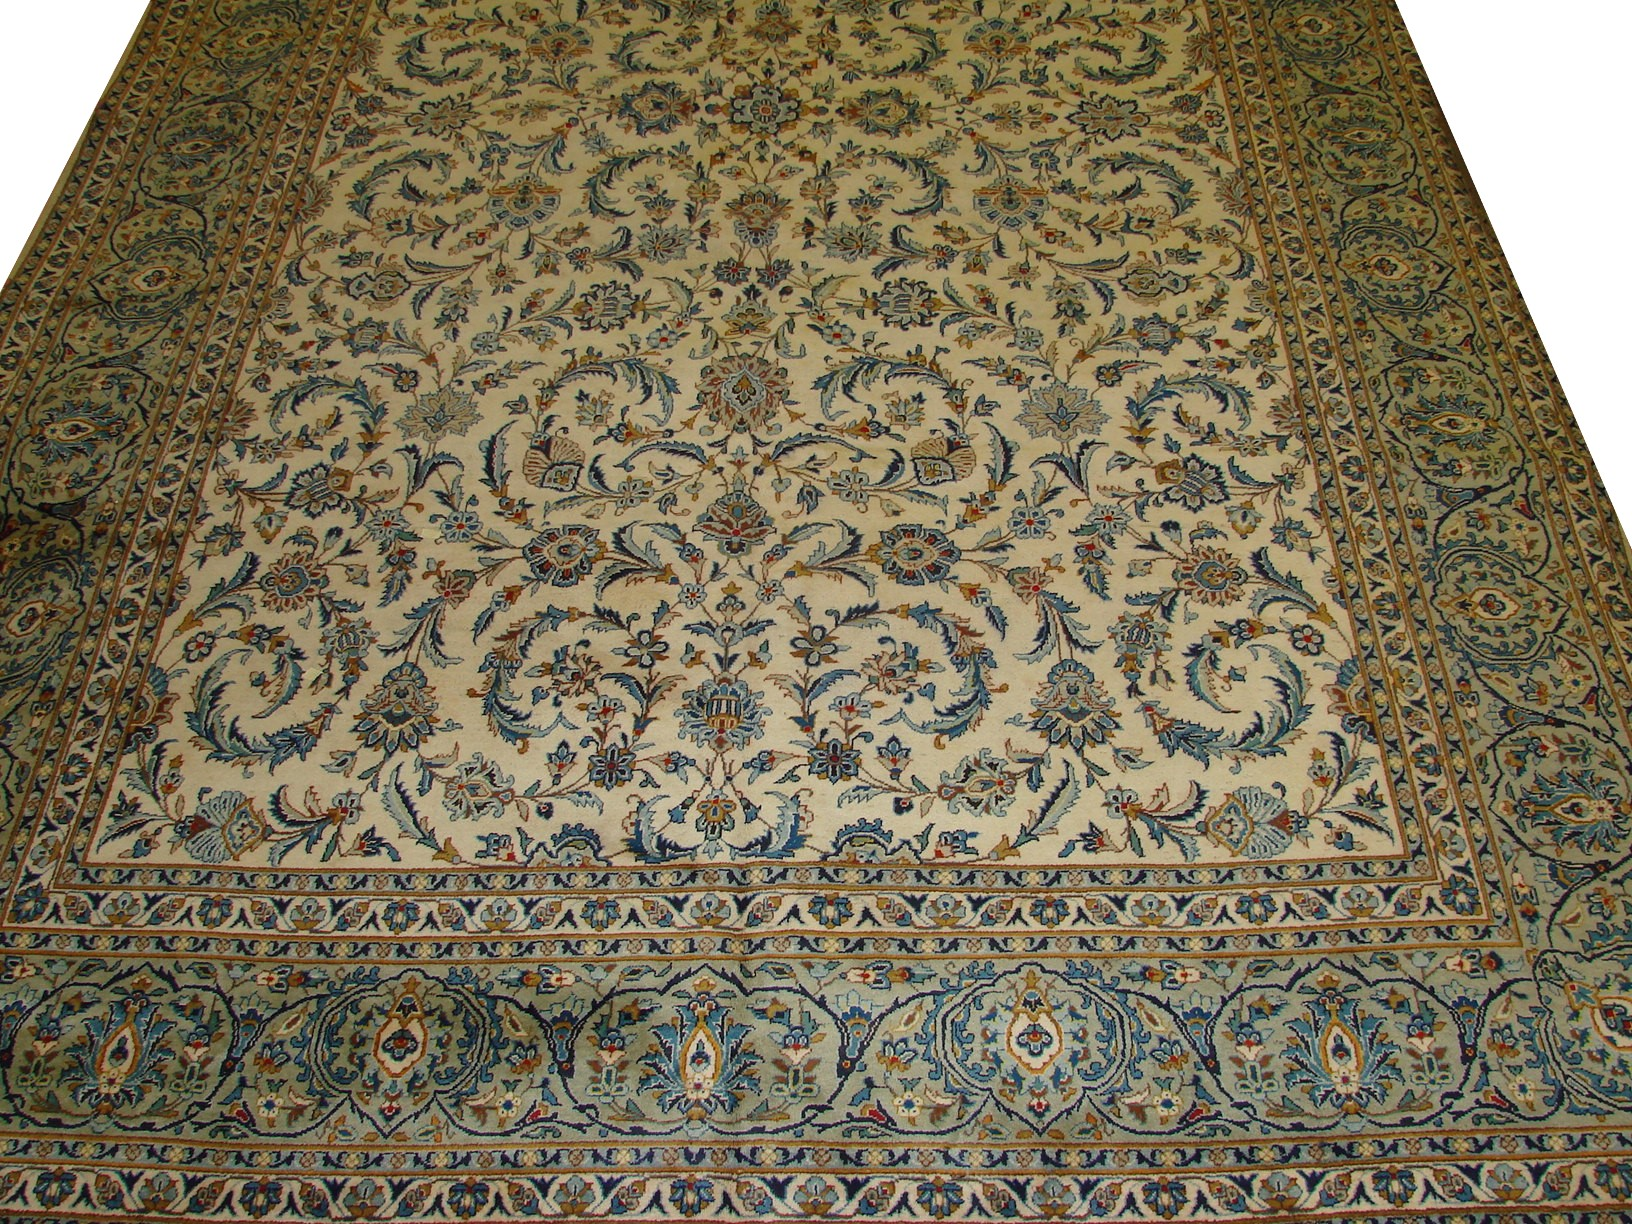 OVERSIZE Traditional Hand Knotted Wool Area Rug - MR11533